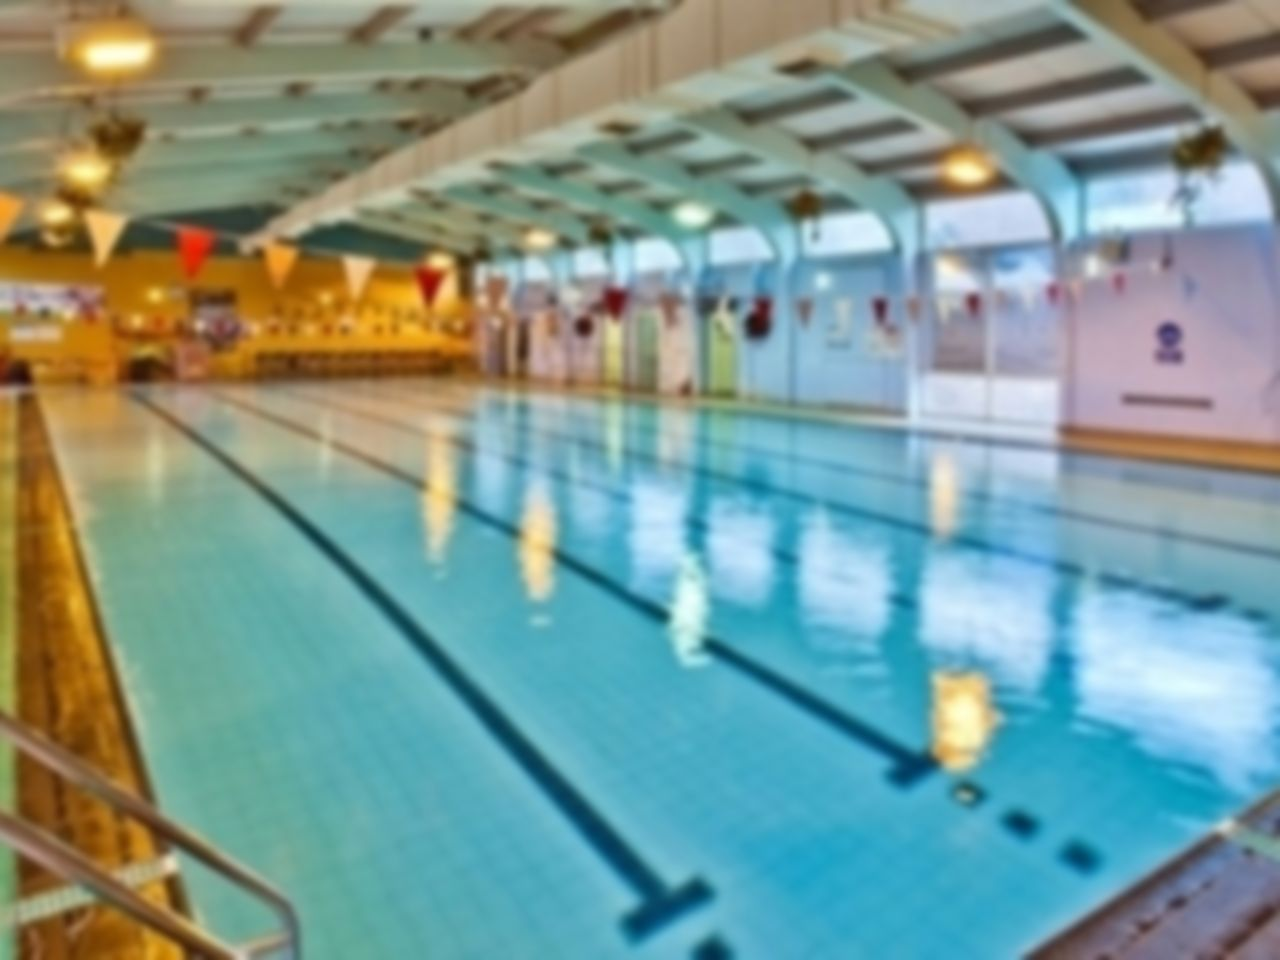 Graves tennis leisure centre flexible gym passes s8 sheffield for Heeley swimming pool opening times